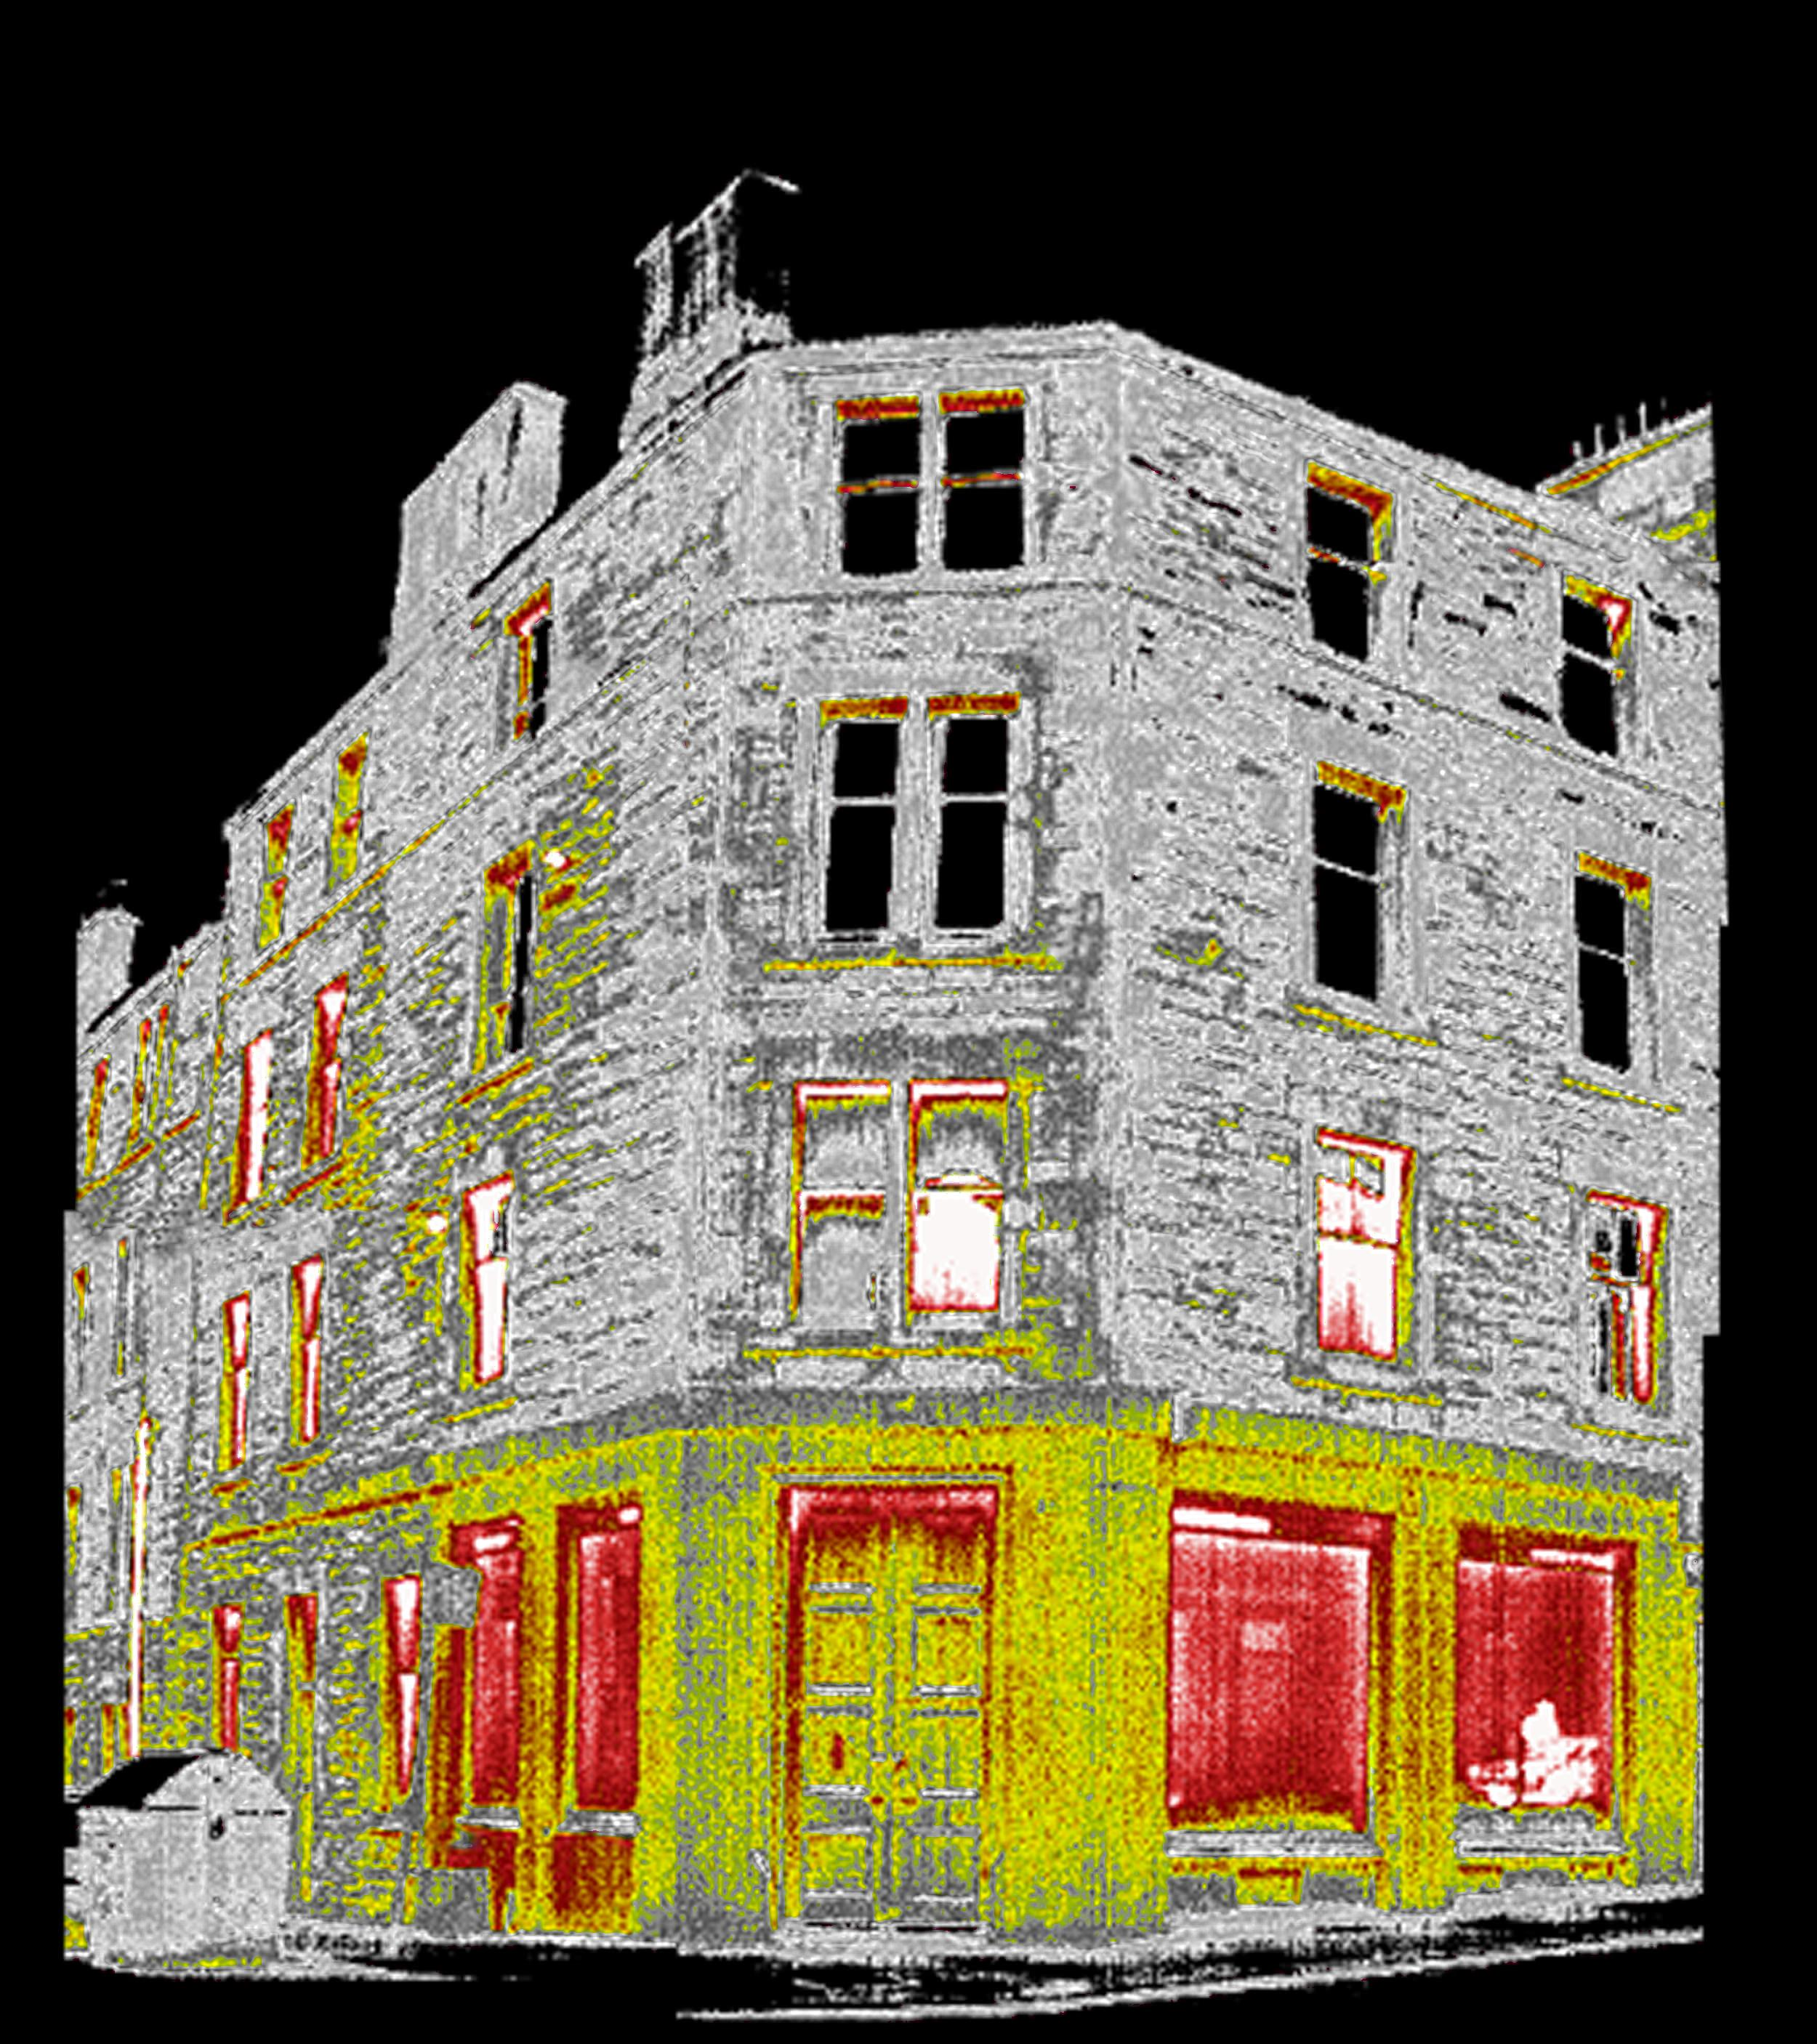 This colour coded thermal image shows exactly where this building is losing energy.